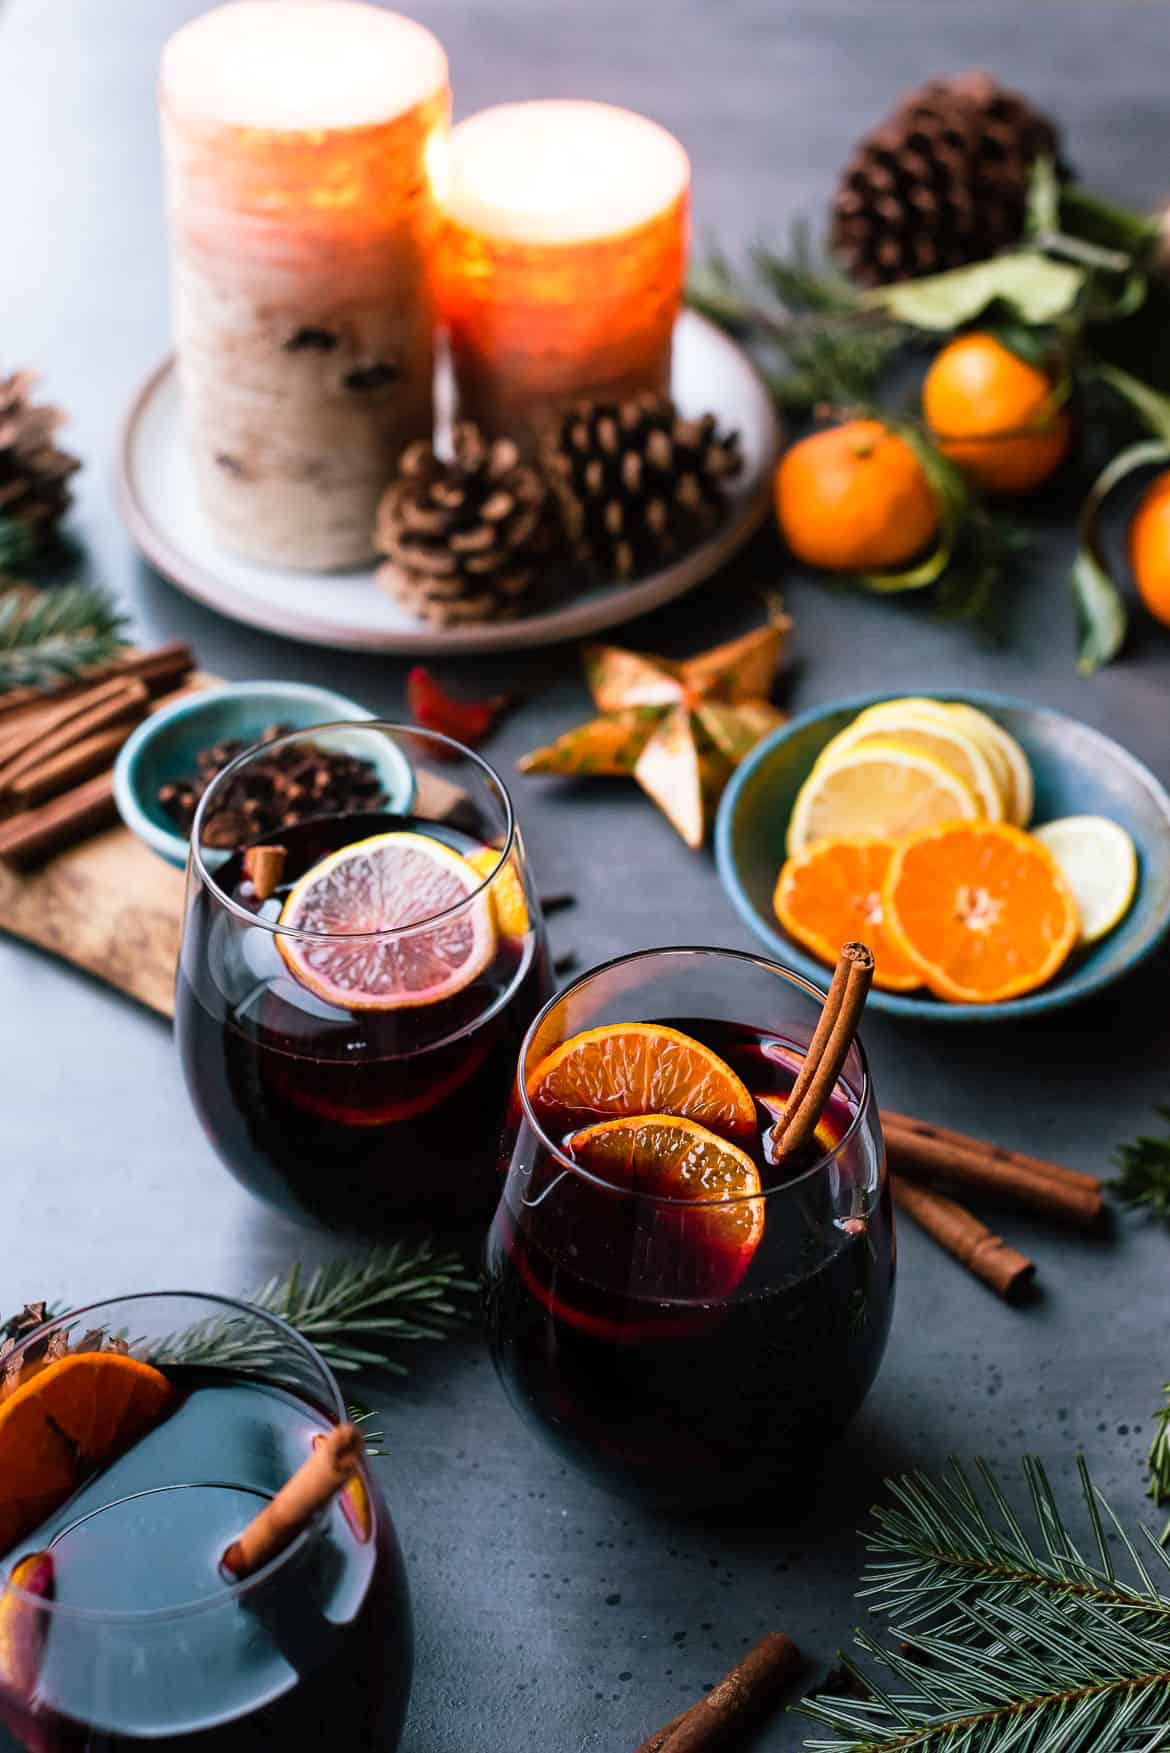 Glasses of mulled wine with citrus and spices for Christmas.